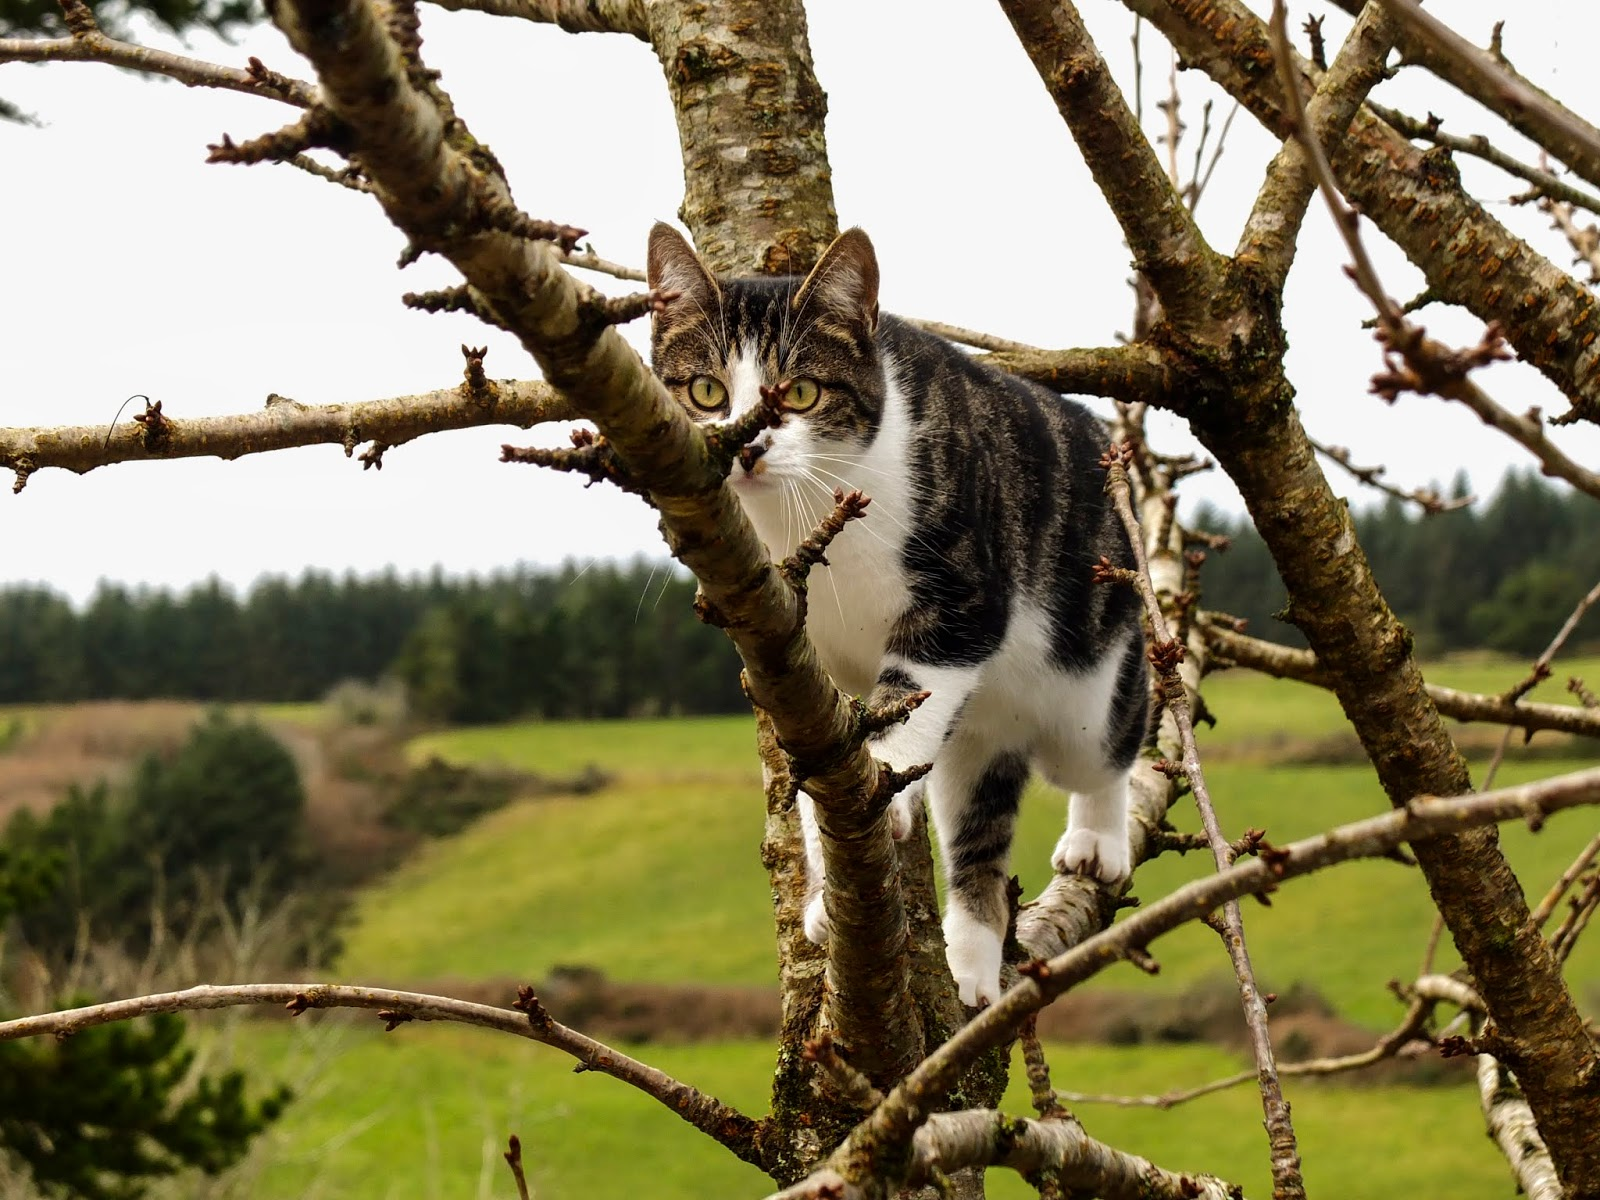 A cat walking along a cherry tree branch.